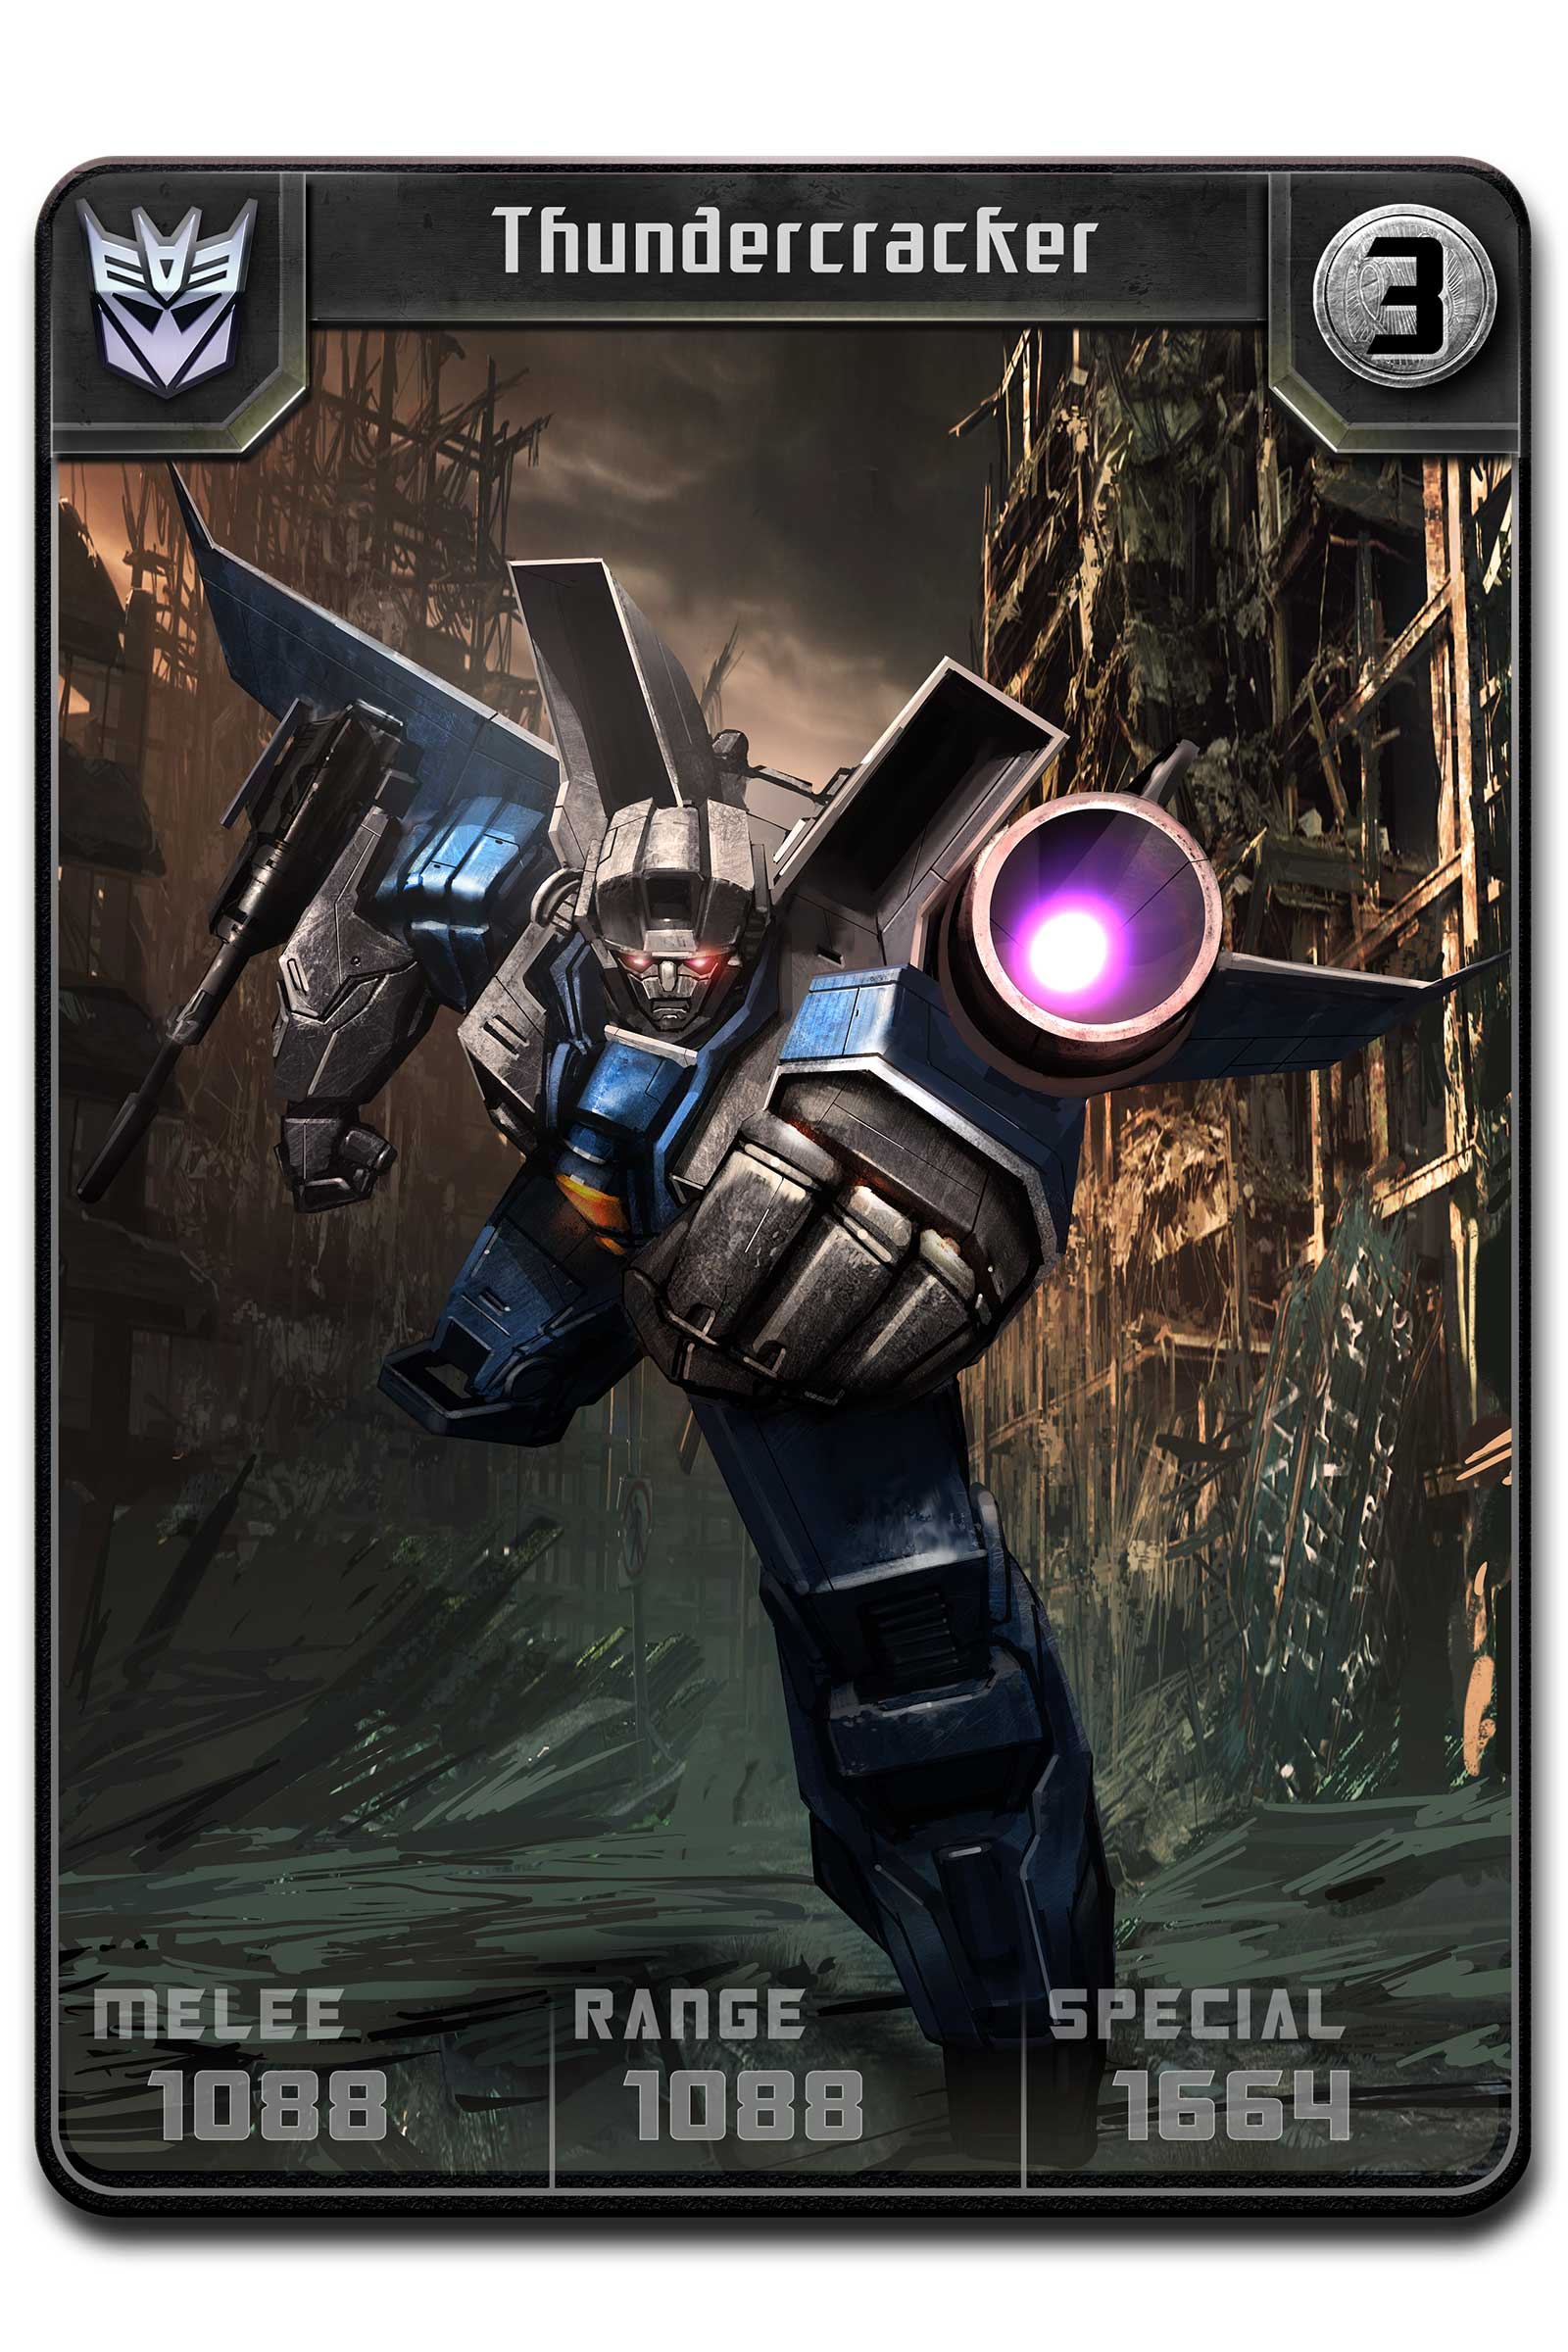 Transformers Battle Card game coming to iOS and Android | Rooster ...